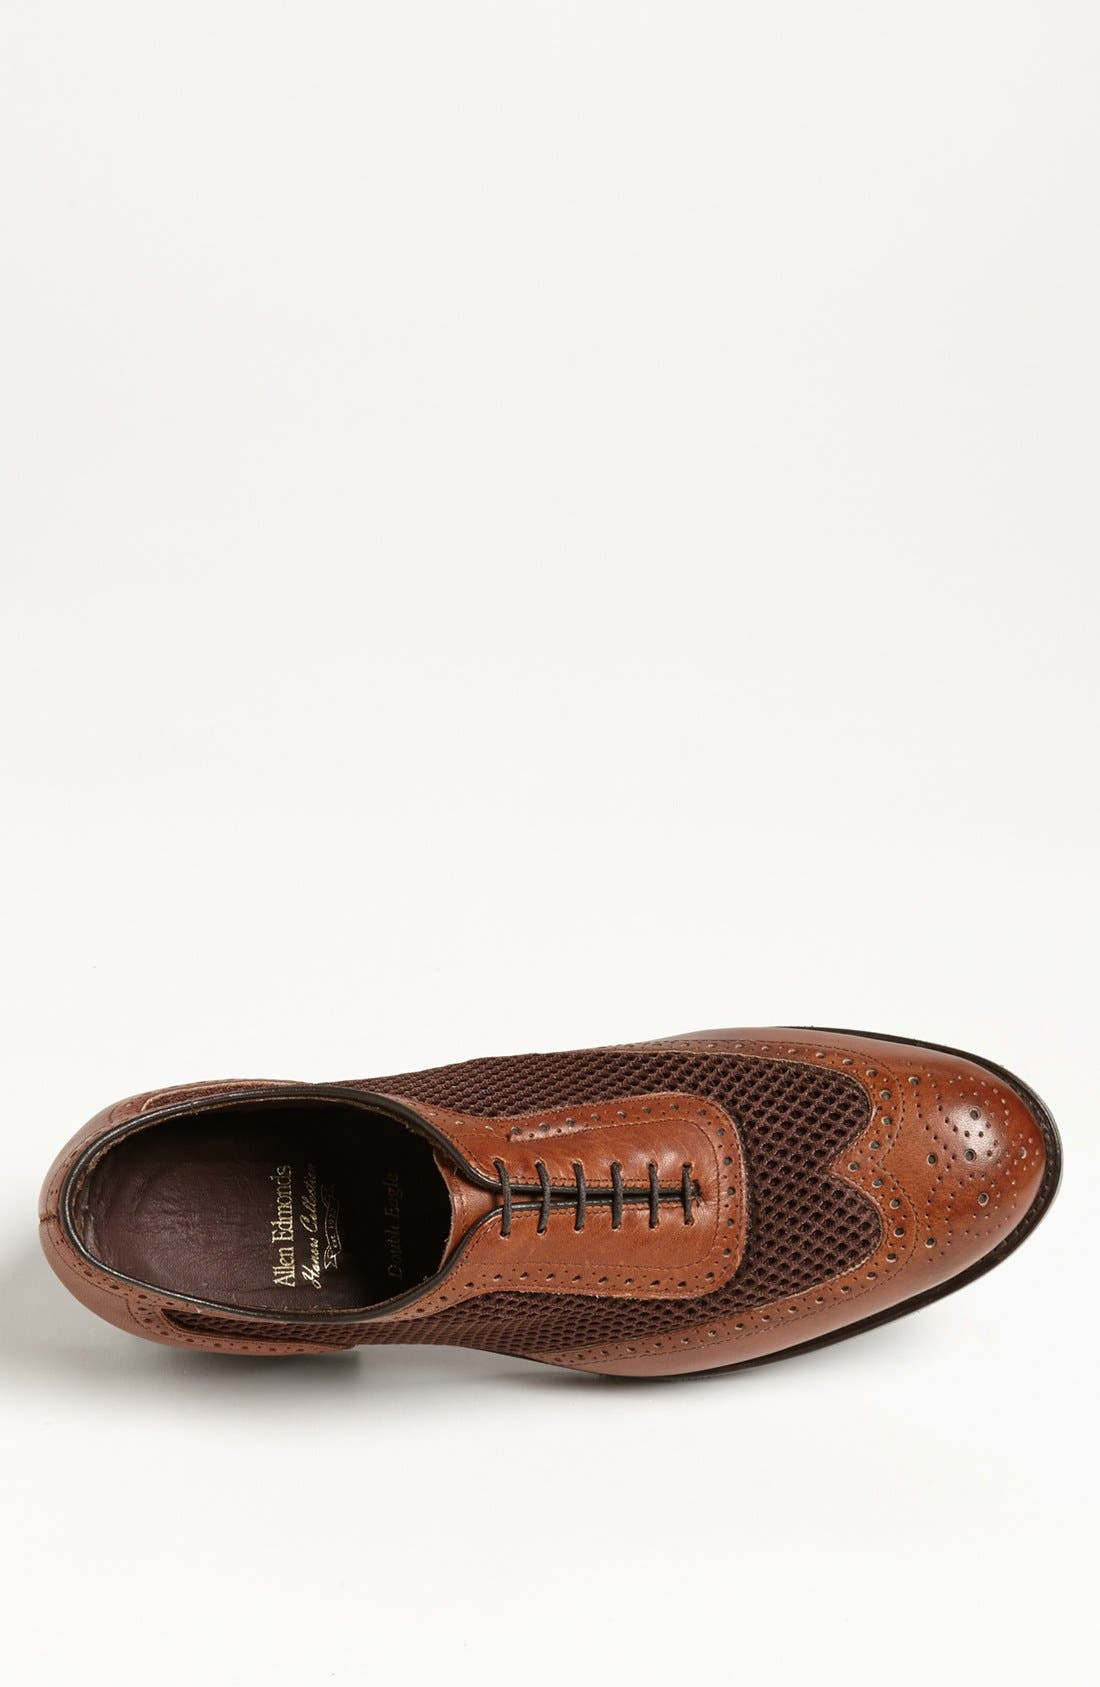 Alternate Image 3  - Allen Edmonds 'Double Eagle' Golf Shoe (Men)